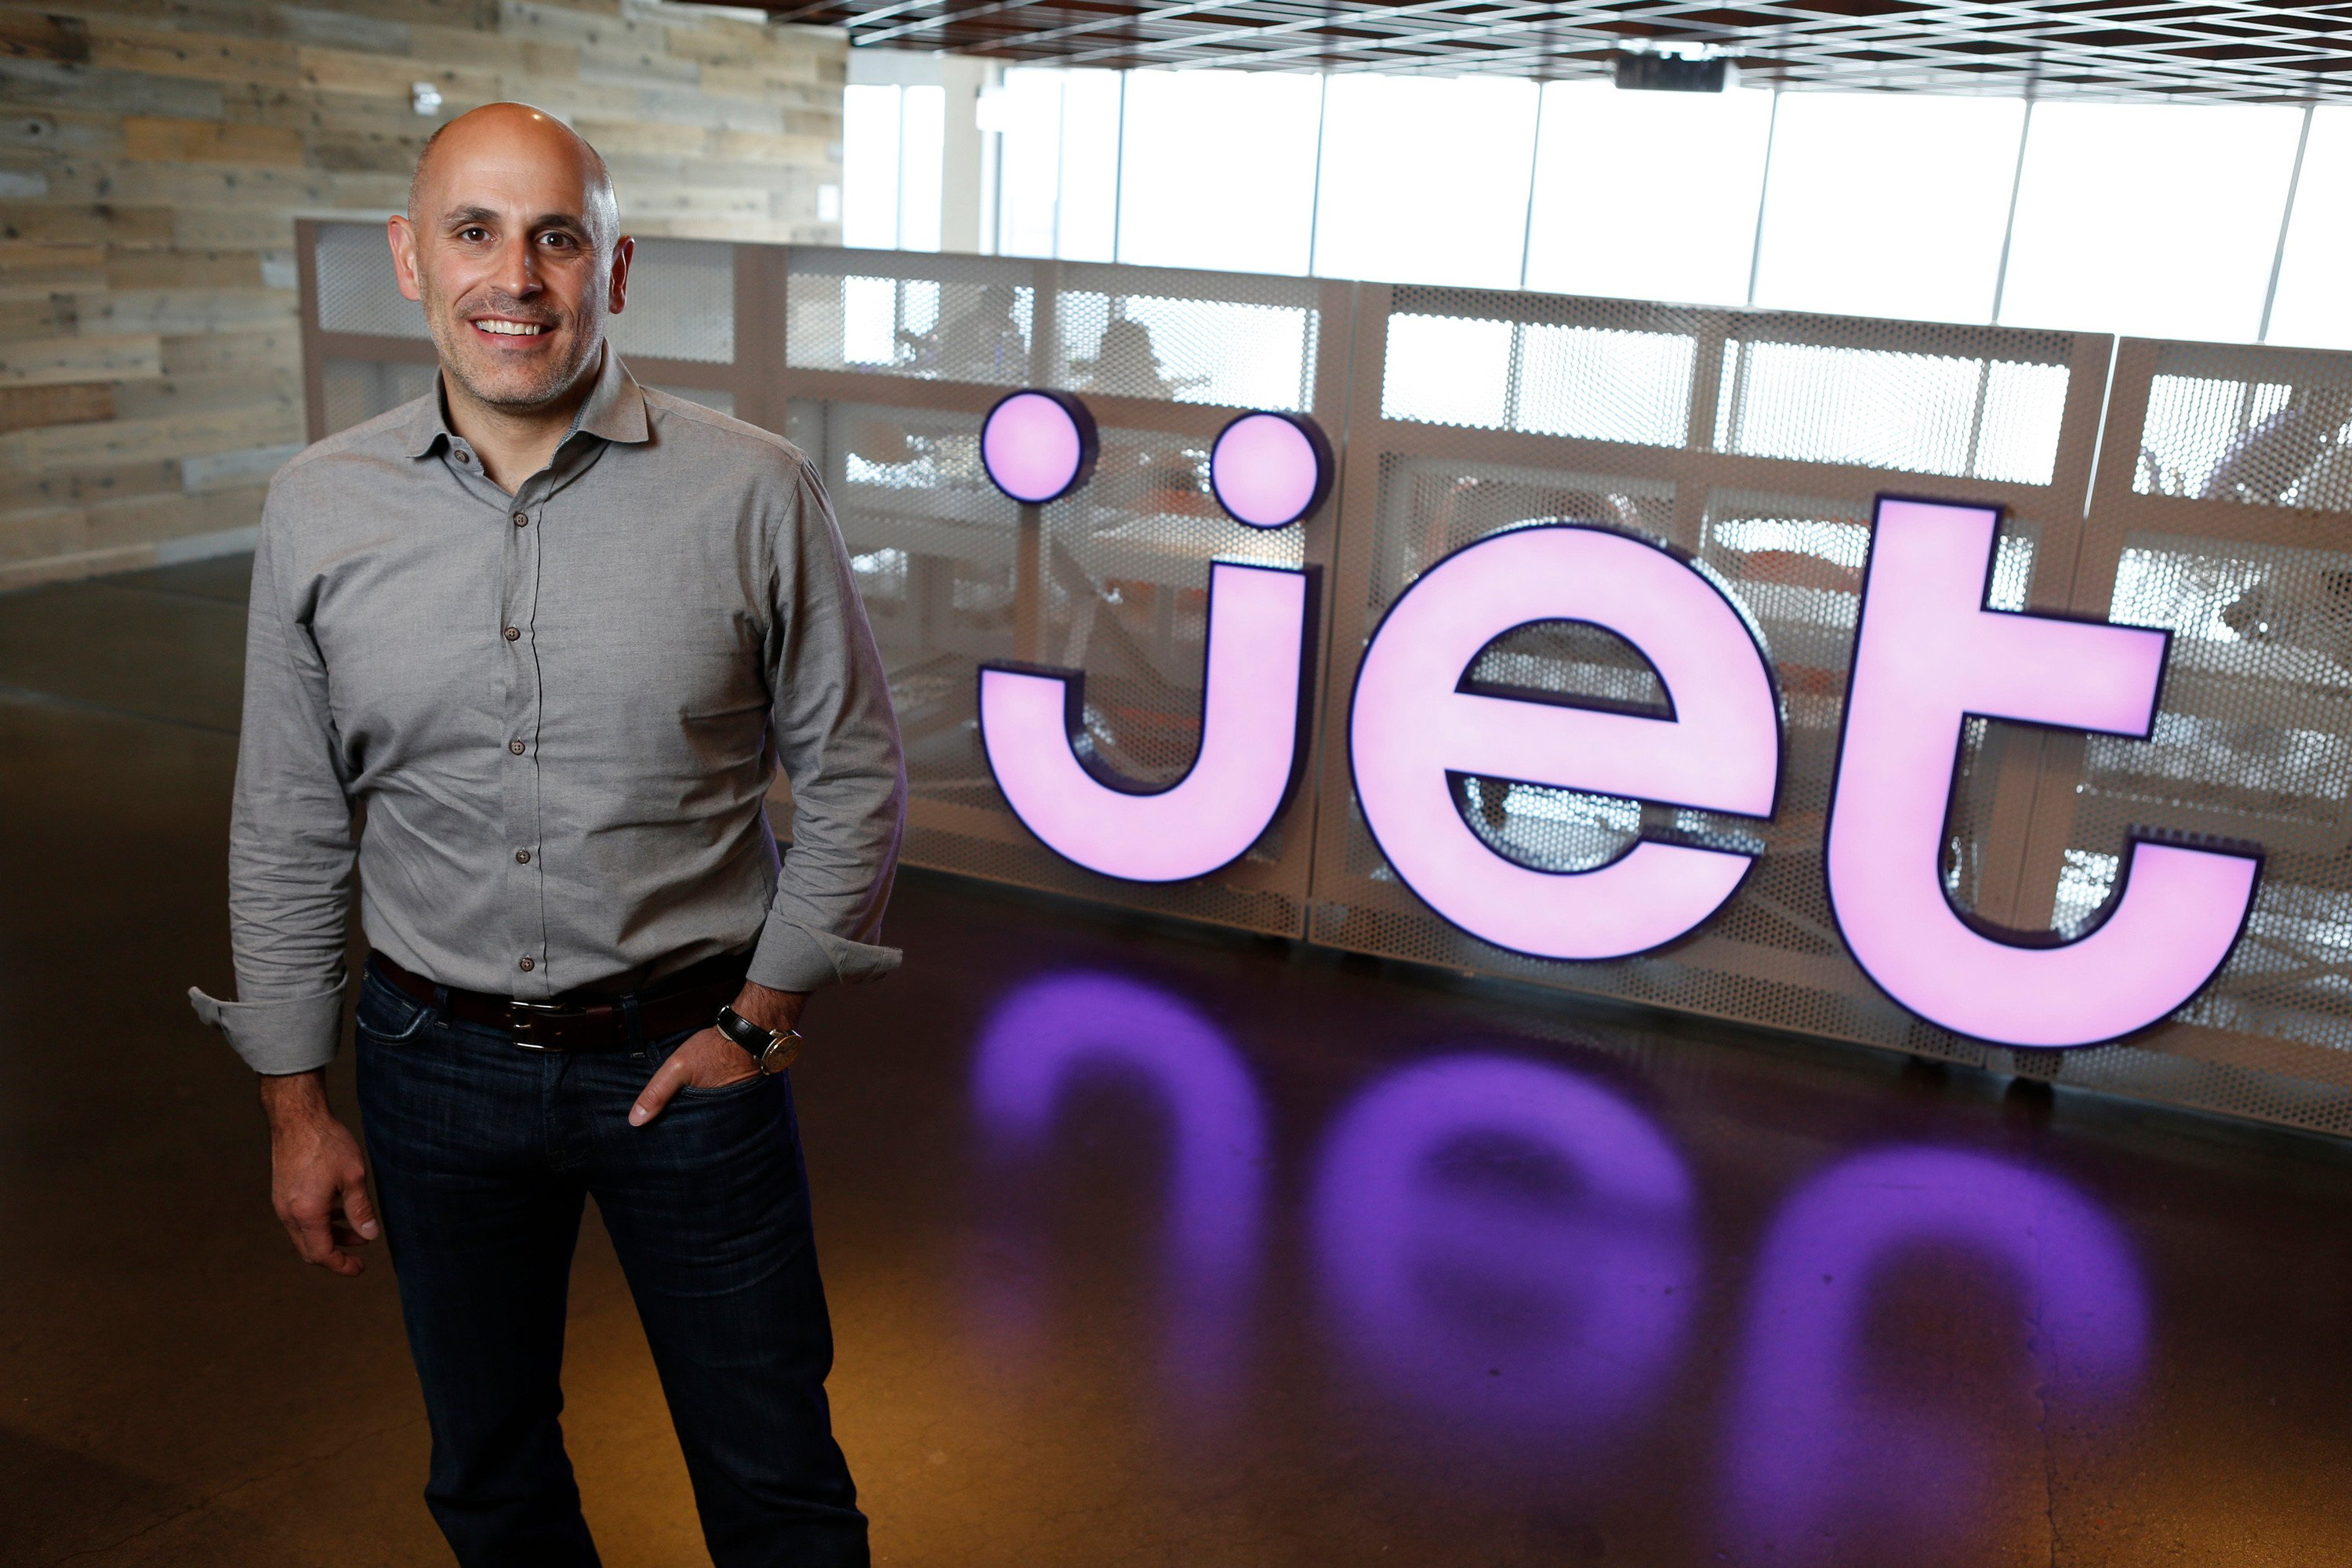 Jet.com's founder may be eyeing the exit at Walmart